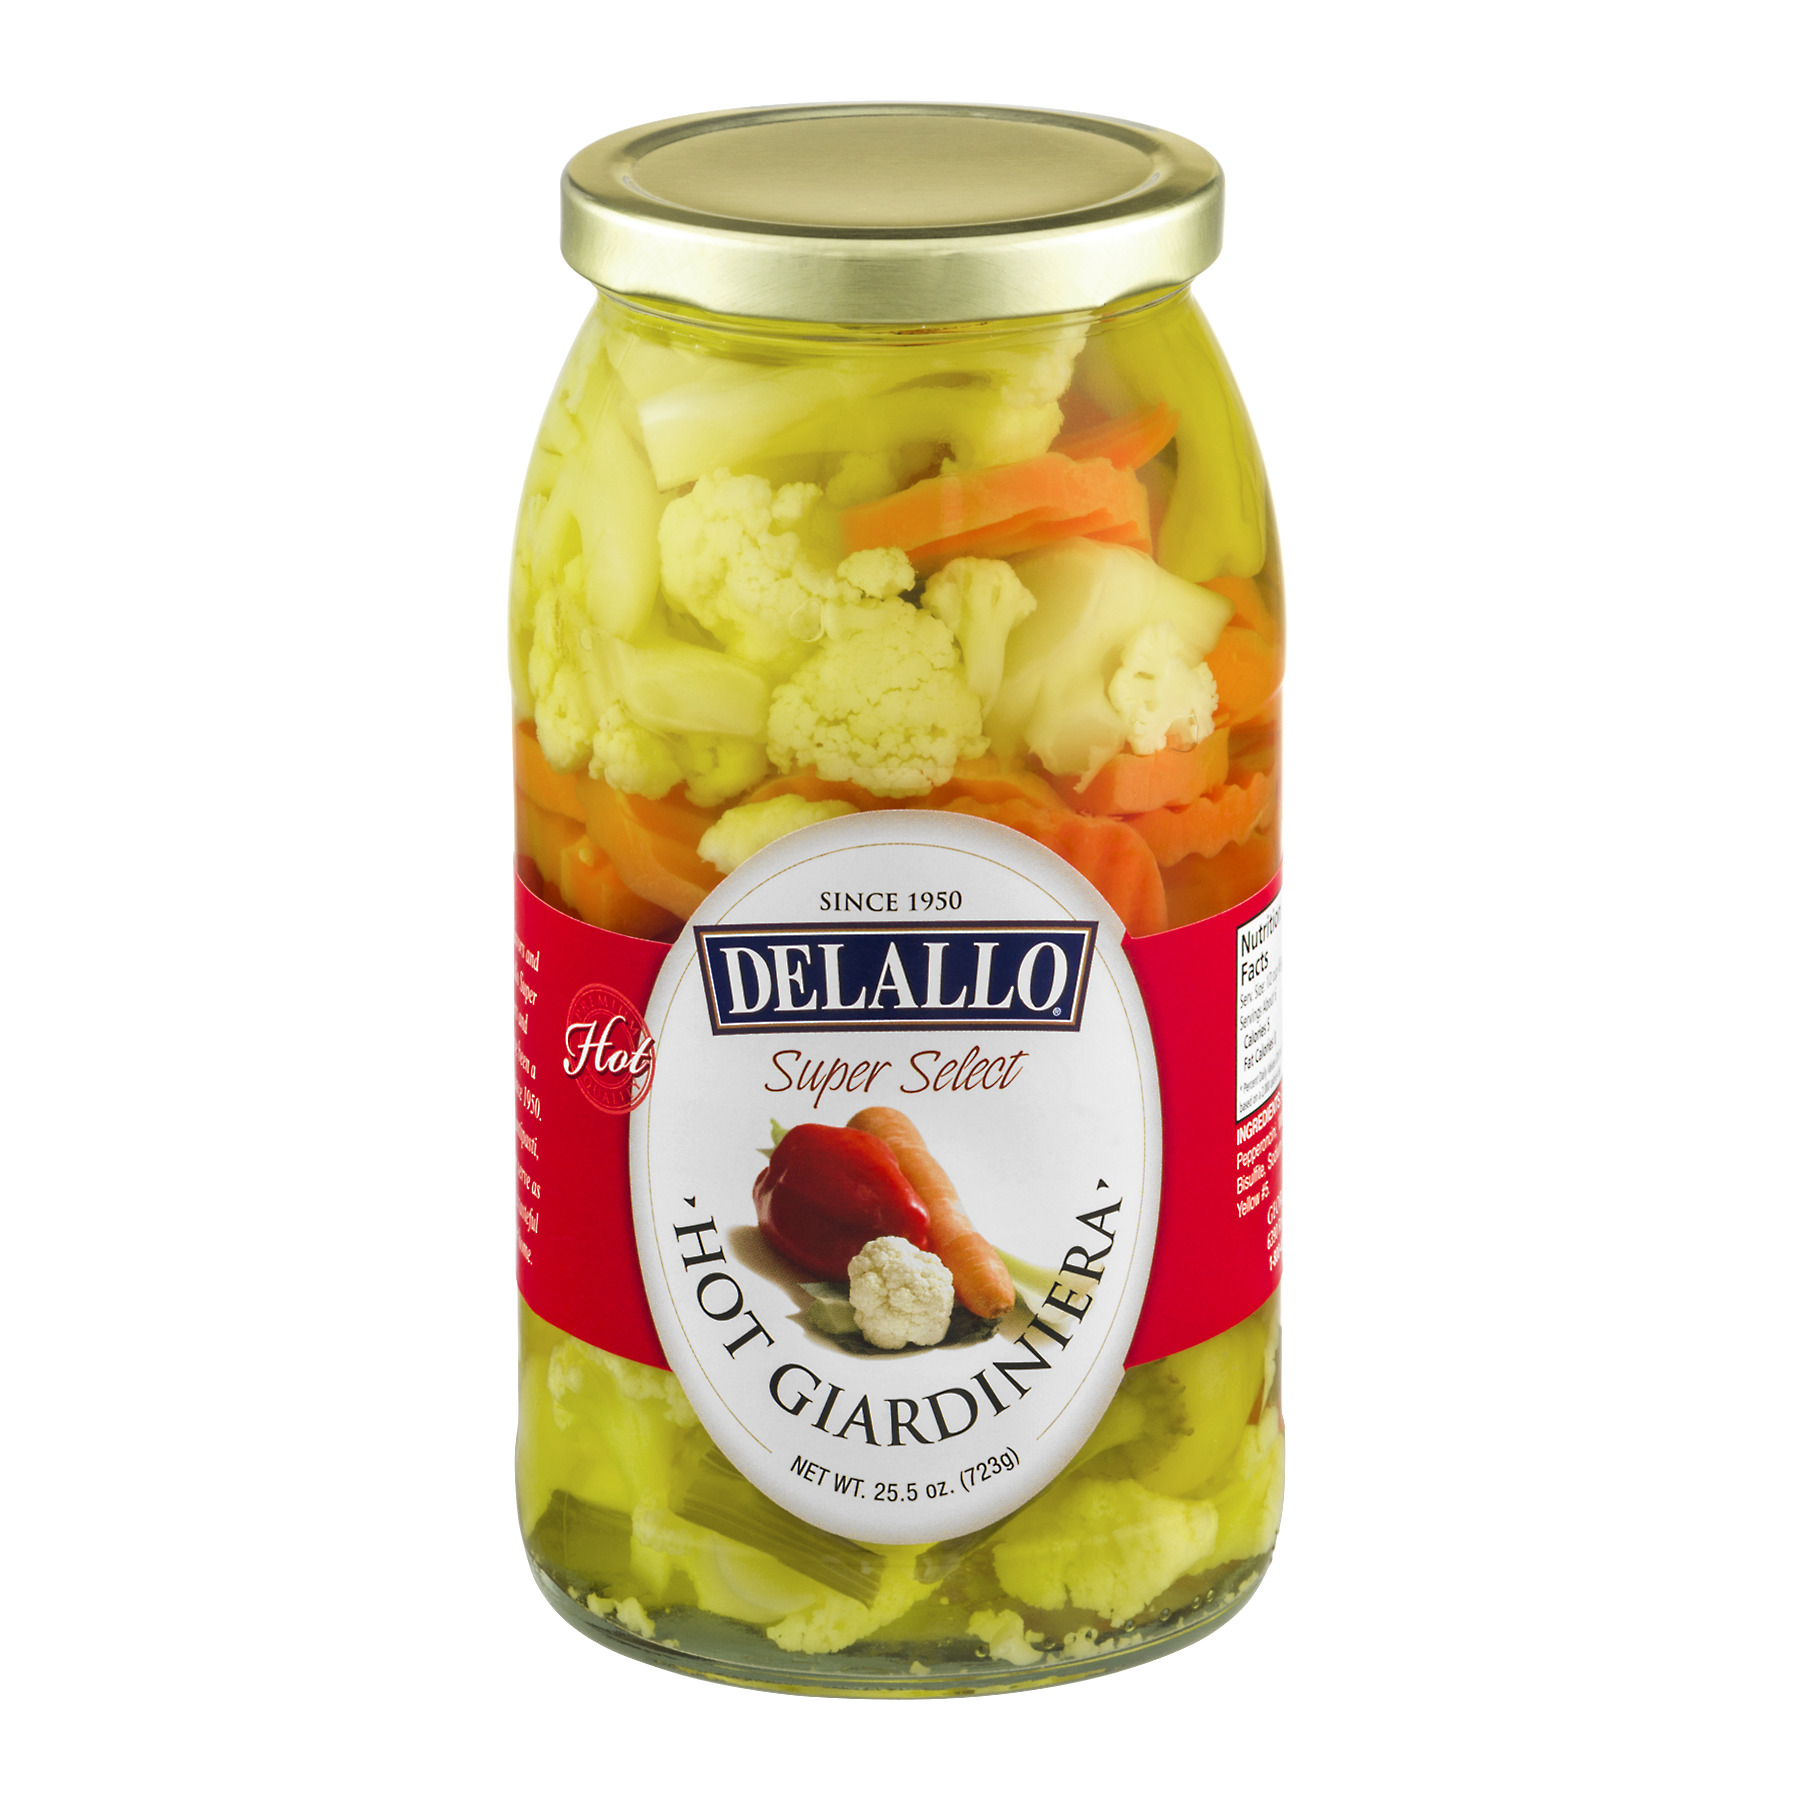 DeLallo Hot Giardiniera, 25.5 oz